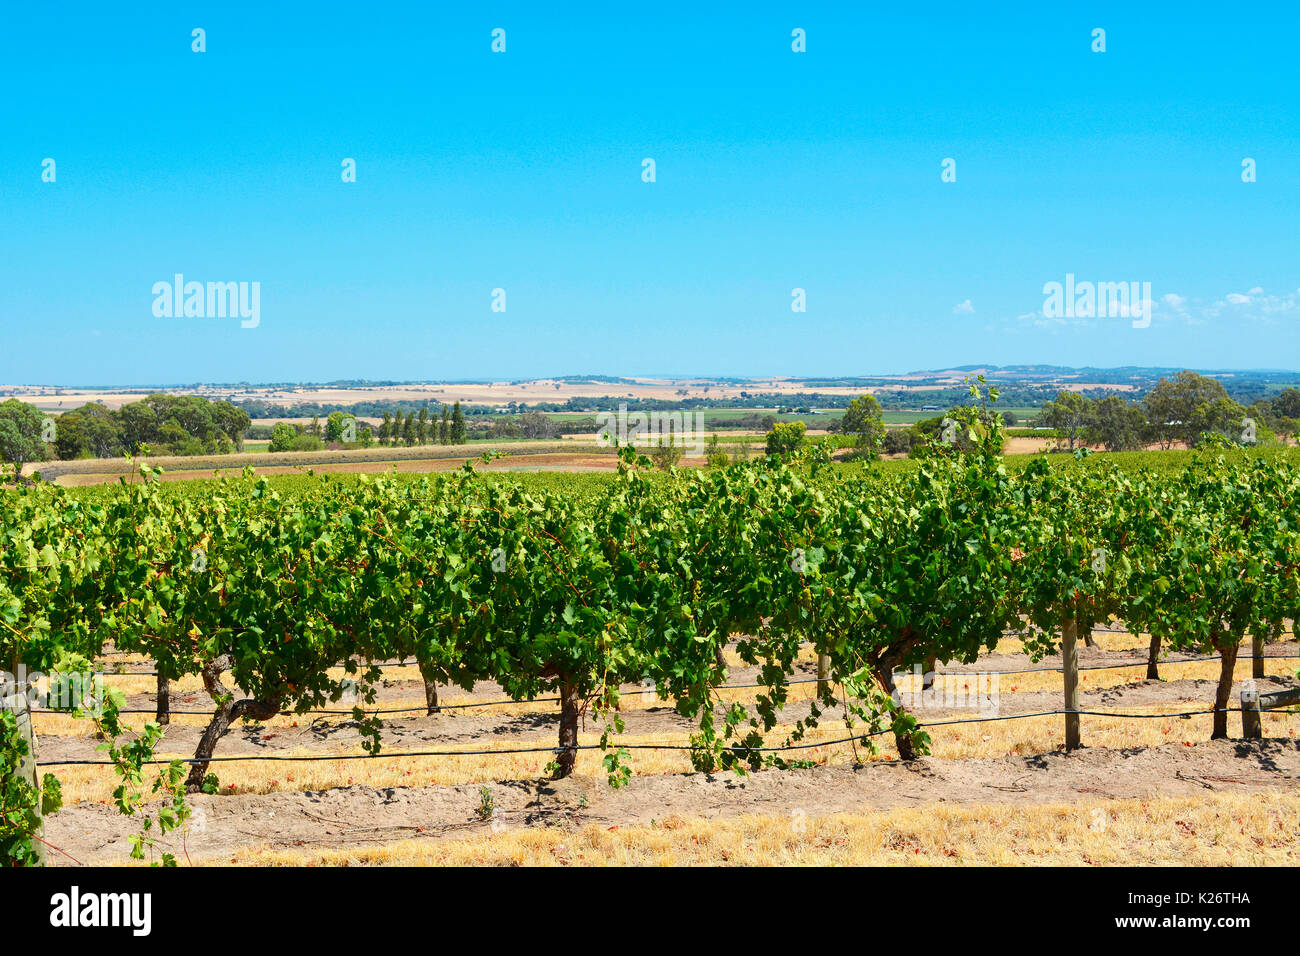 Australian wineries rows of grape vines taken on a bright and sunny day at the Barossa Valley, South Australia. - Stock Image